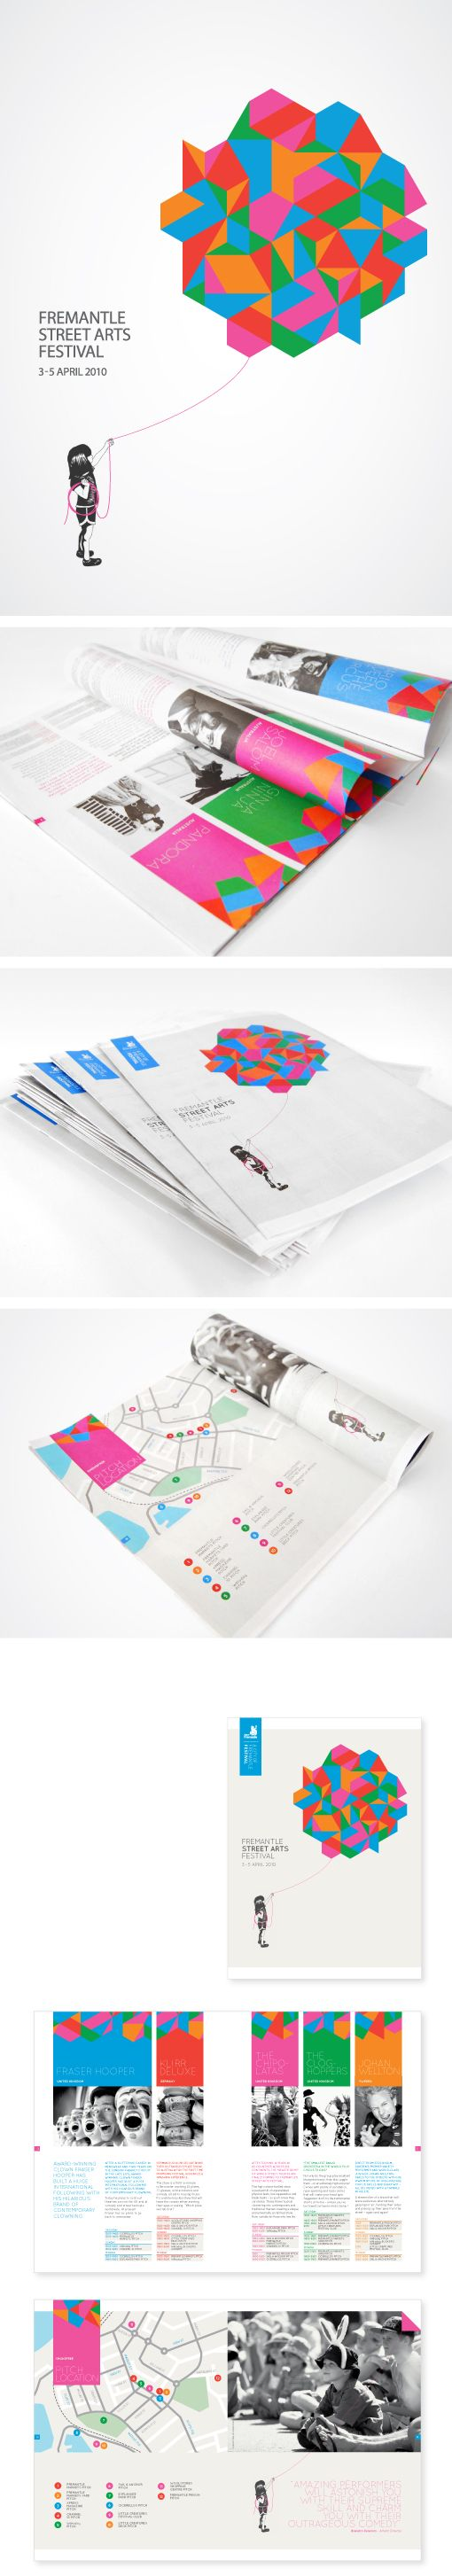 design inspiration website web letterhead stationary sample modern colors fonts logo logos typography examples